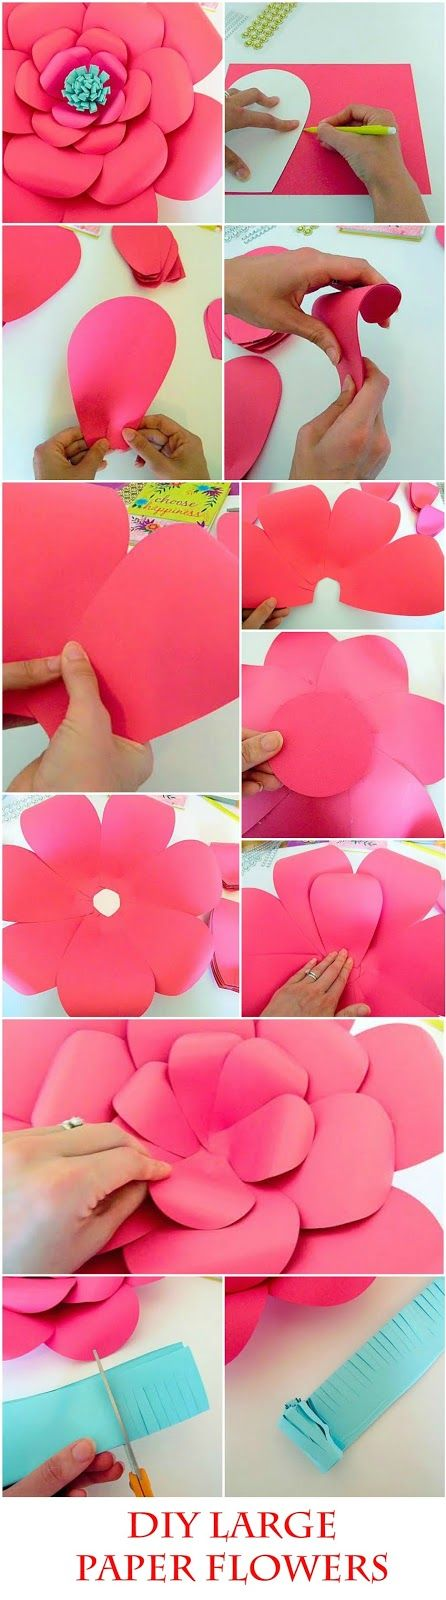 How to make large paper flowers easy diy giant paper flower get mamas gone crafty easy method when building any diy giant paper flower mightylinksfo